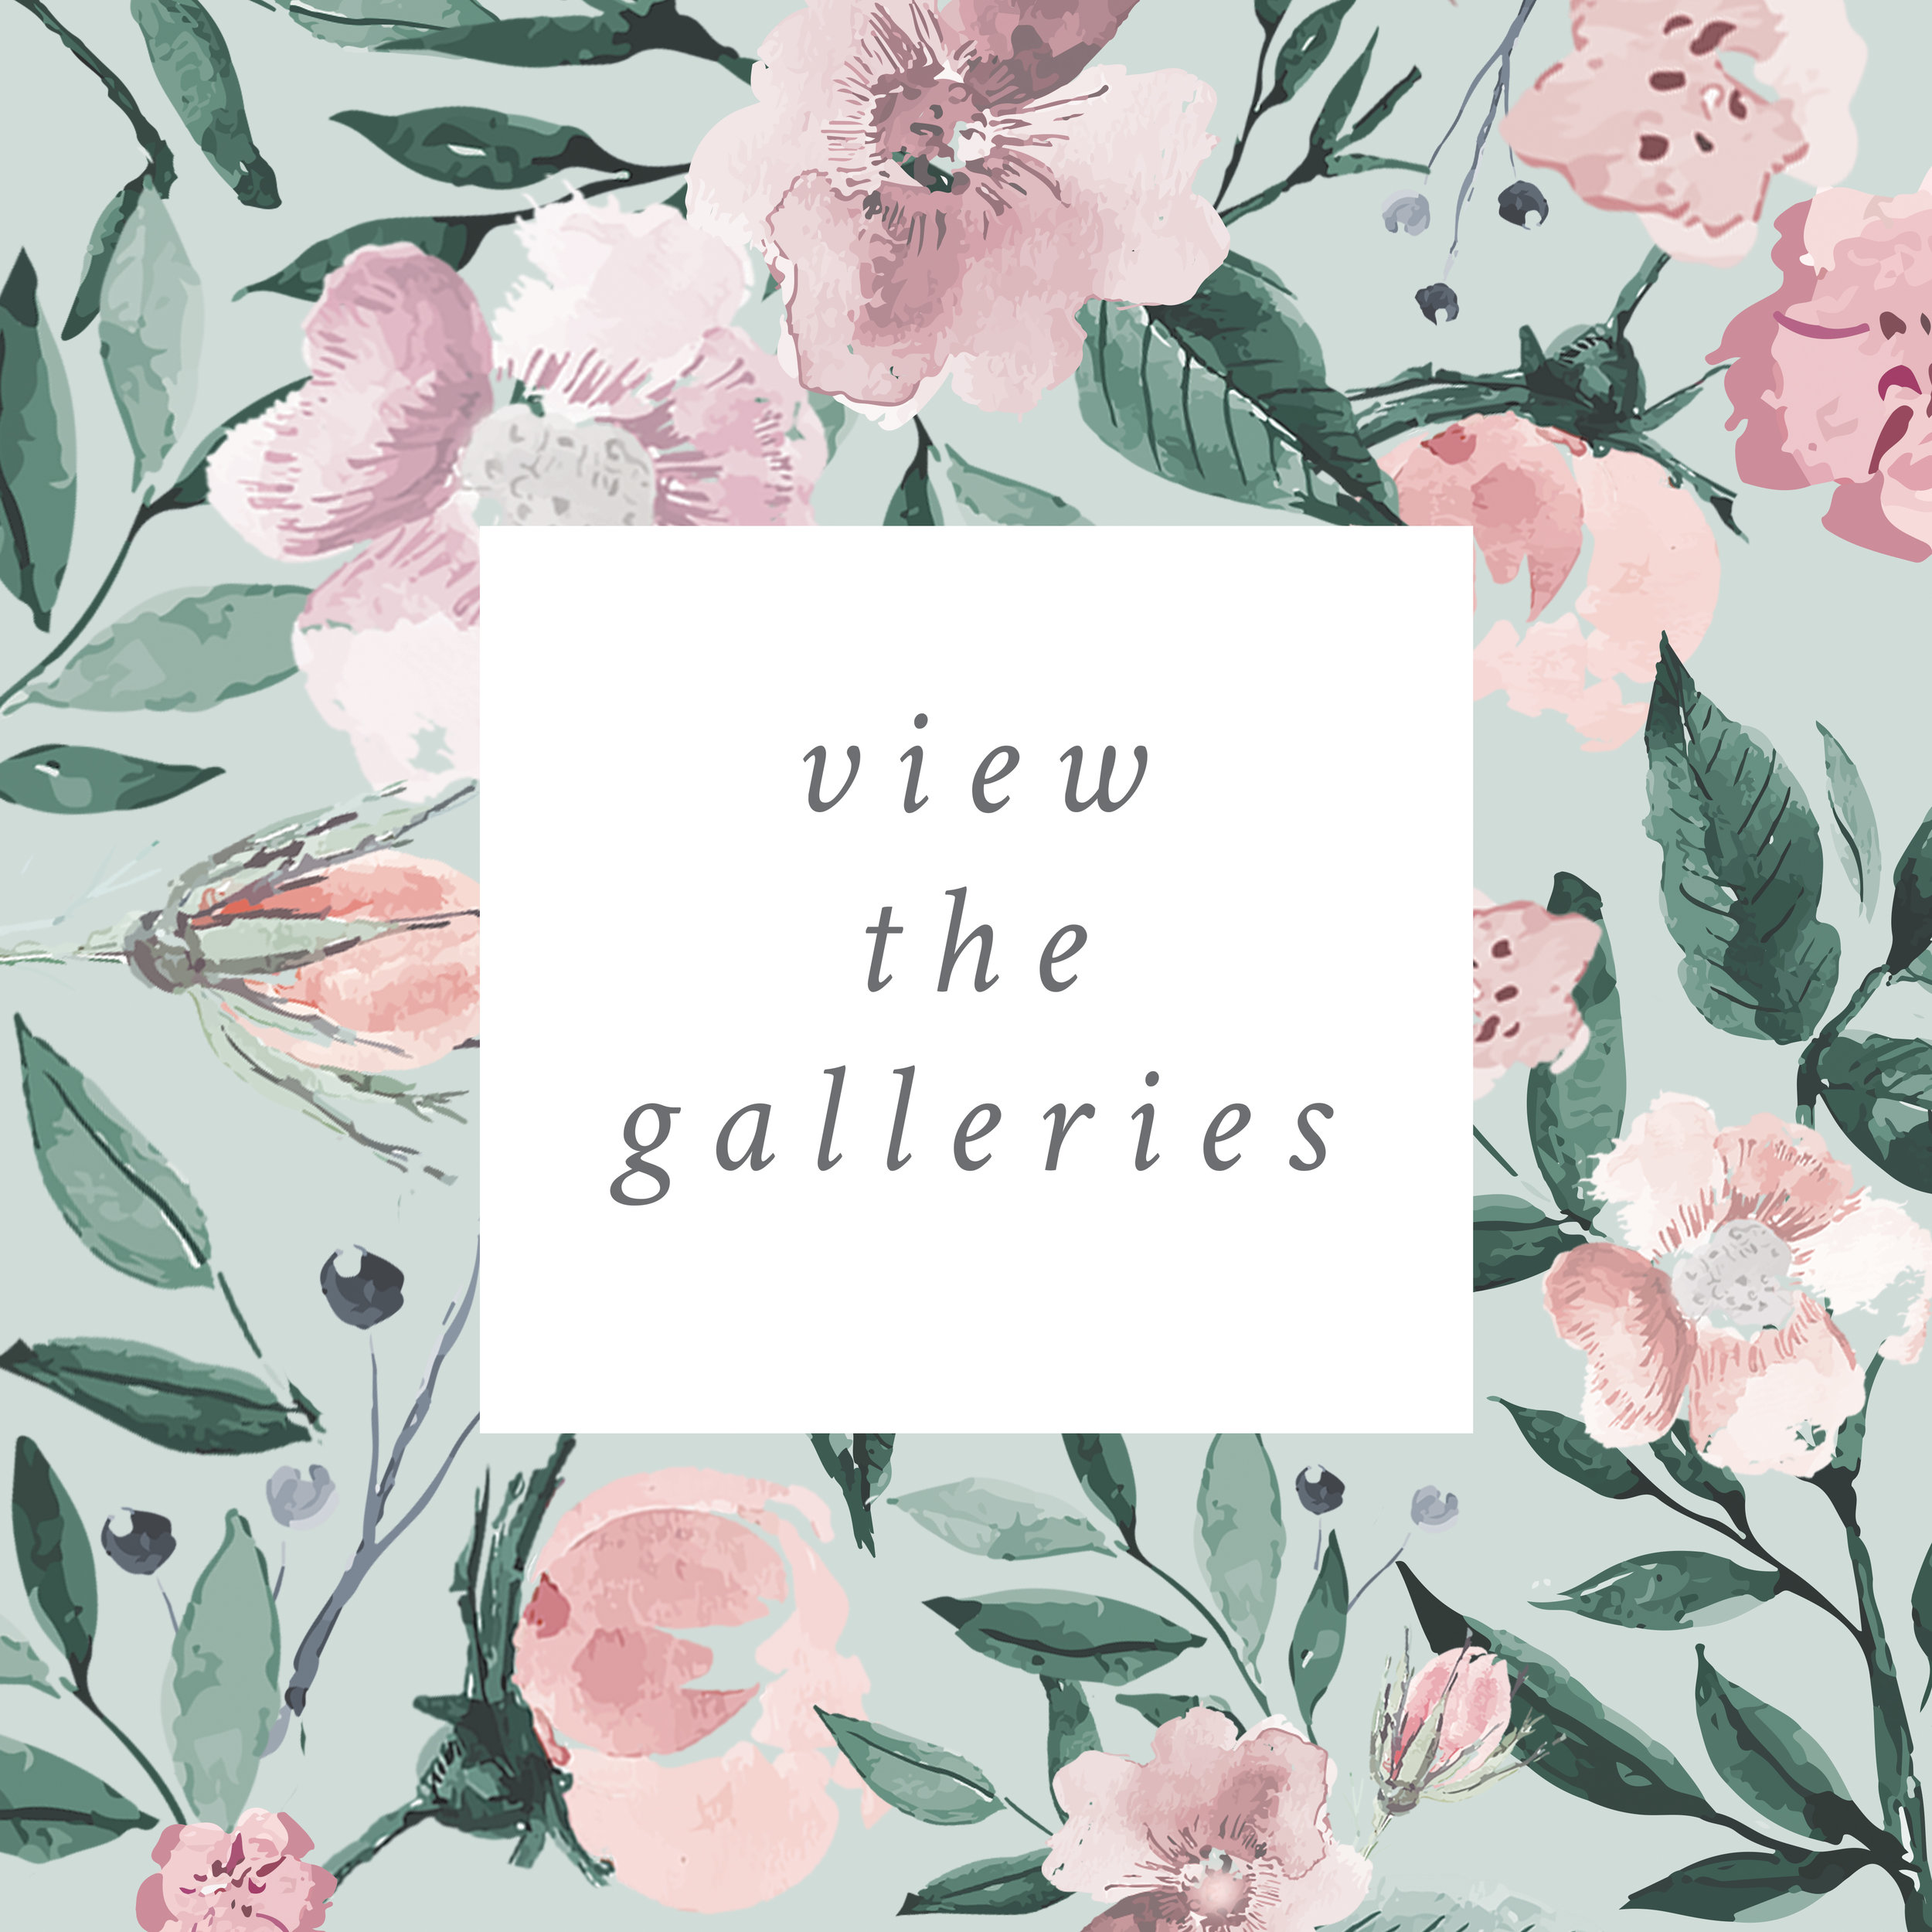 ViewGalleries_Pattern.jpg